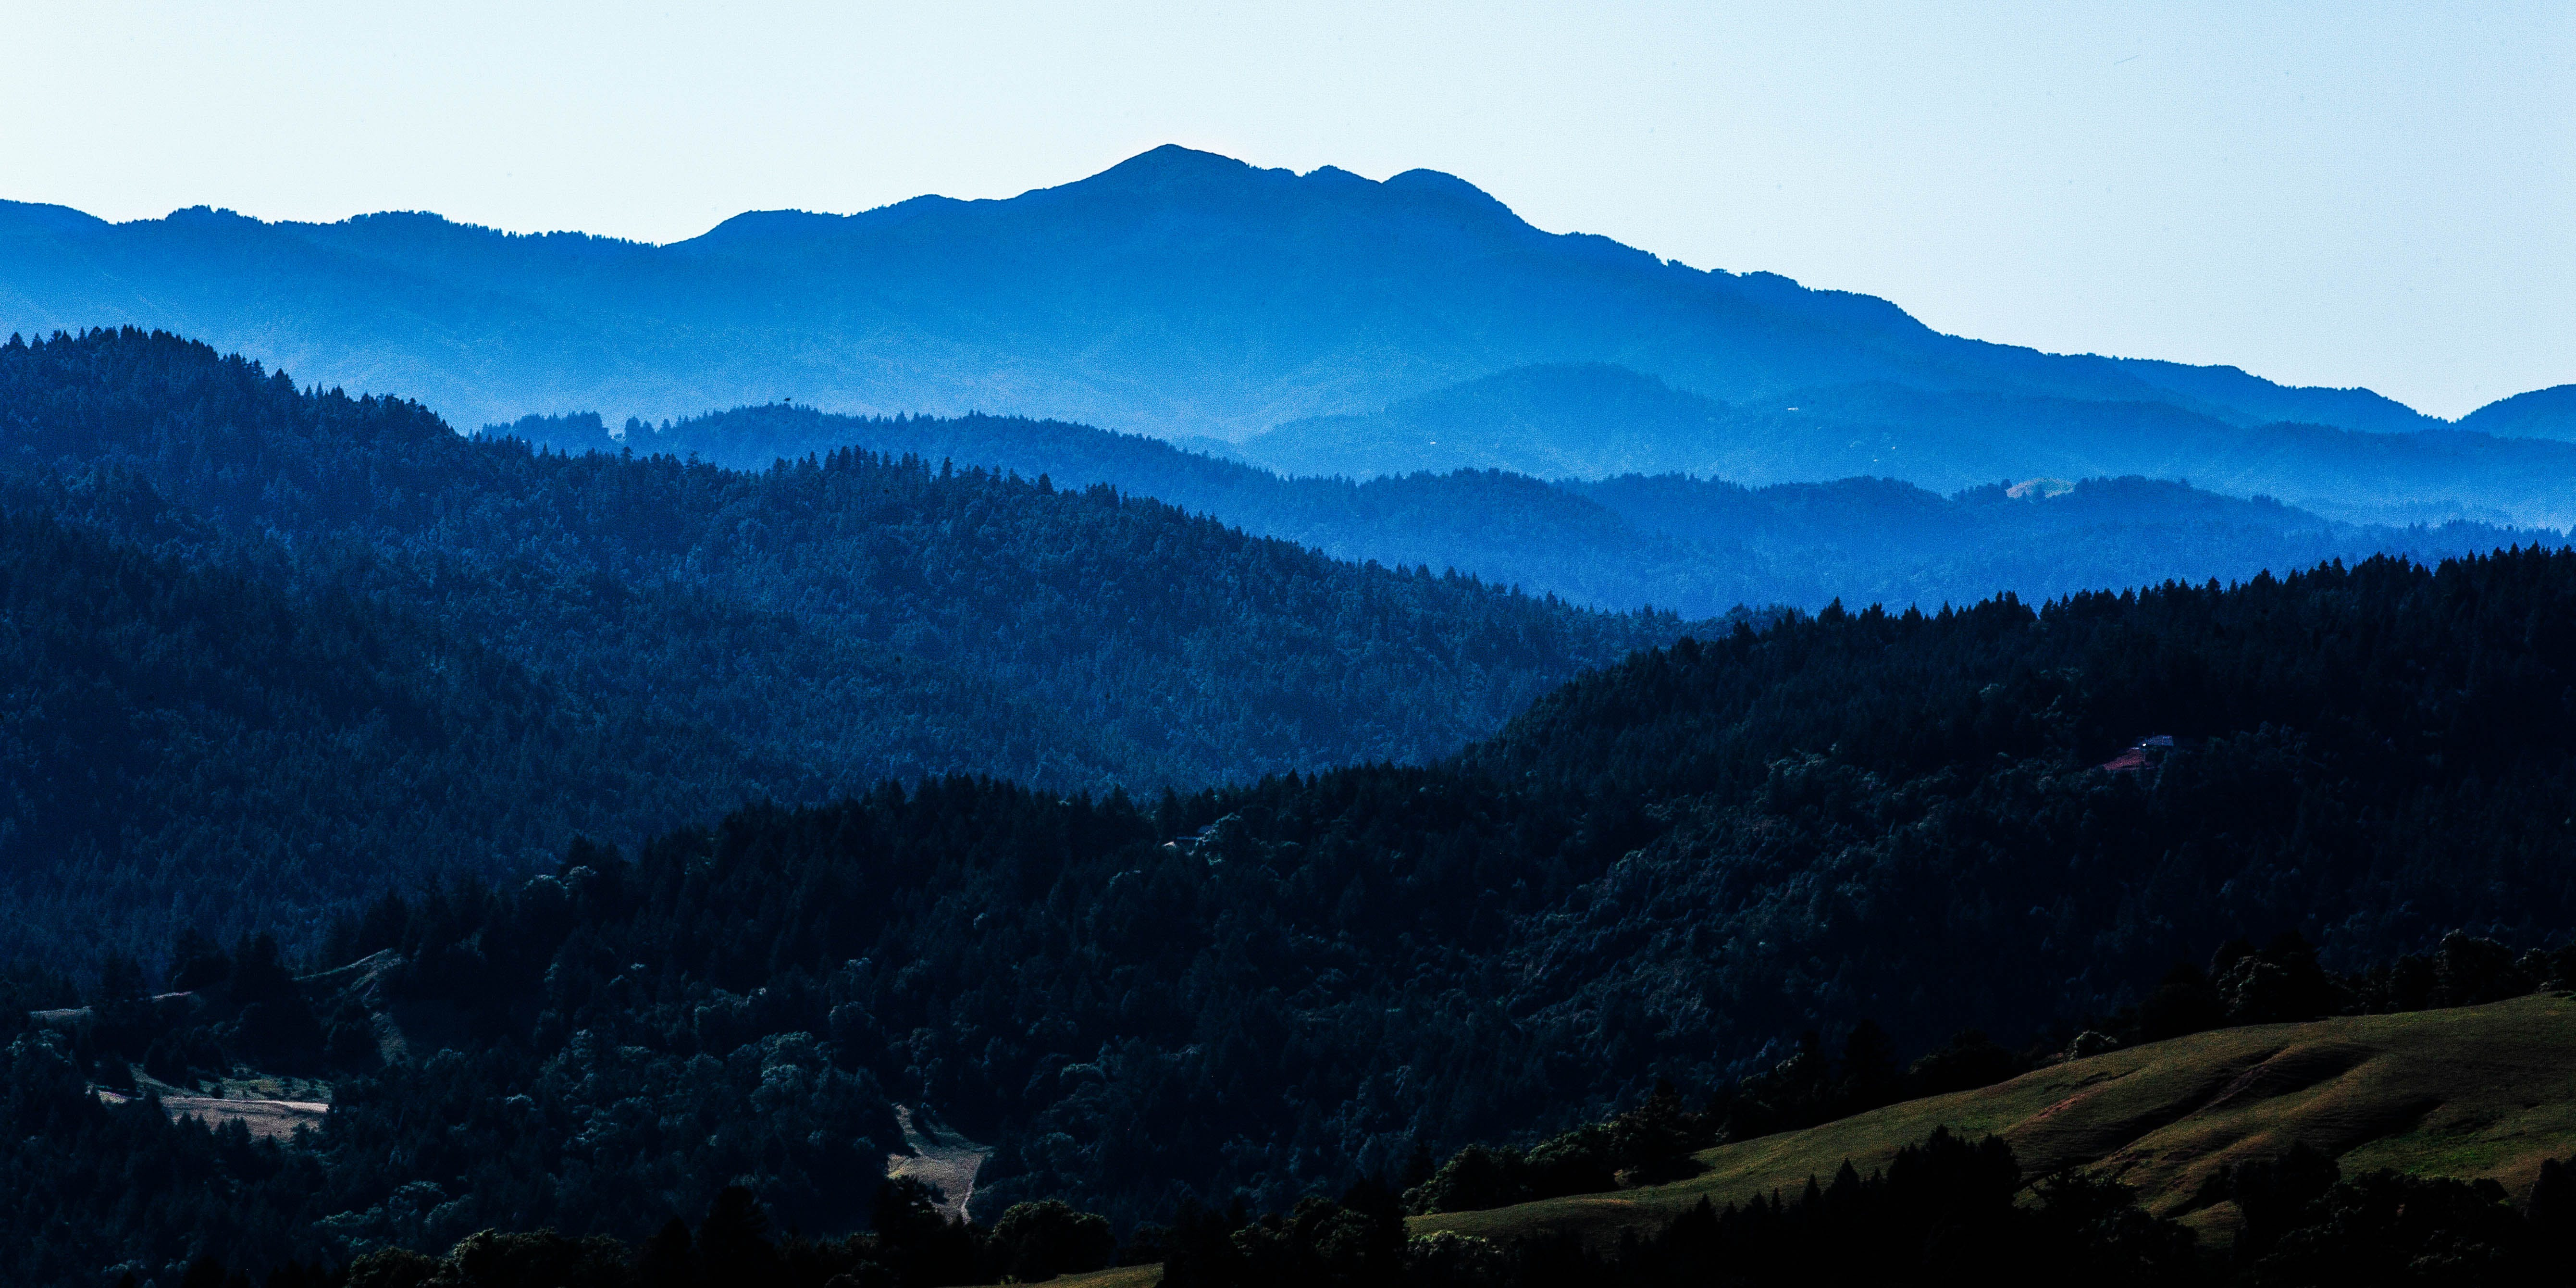 The rolling mountains of Humboldt County, CA on May 12, 2018. Human trafficking in Humboldt continues to be a problem as the region is so vast.